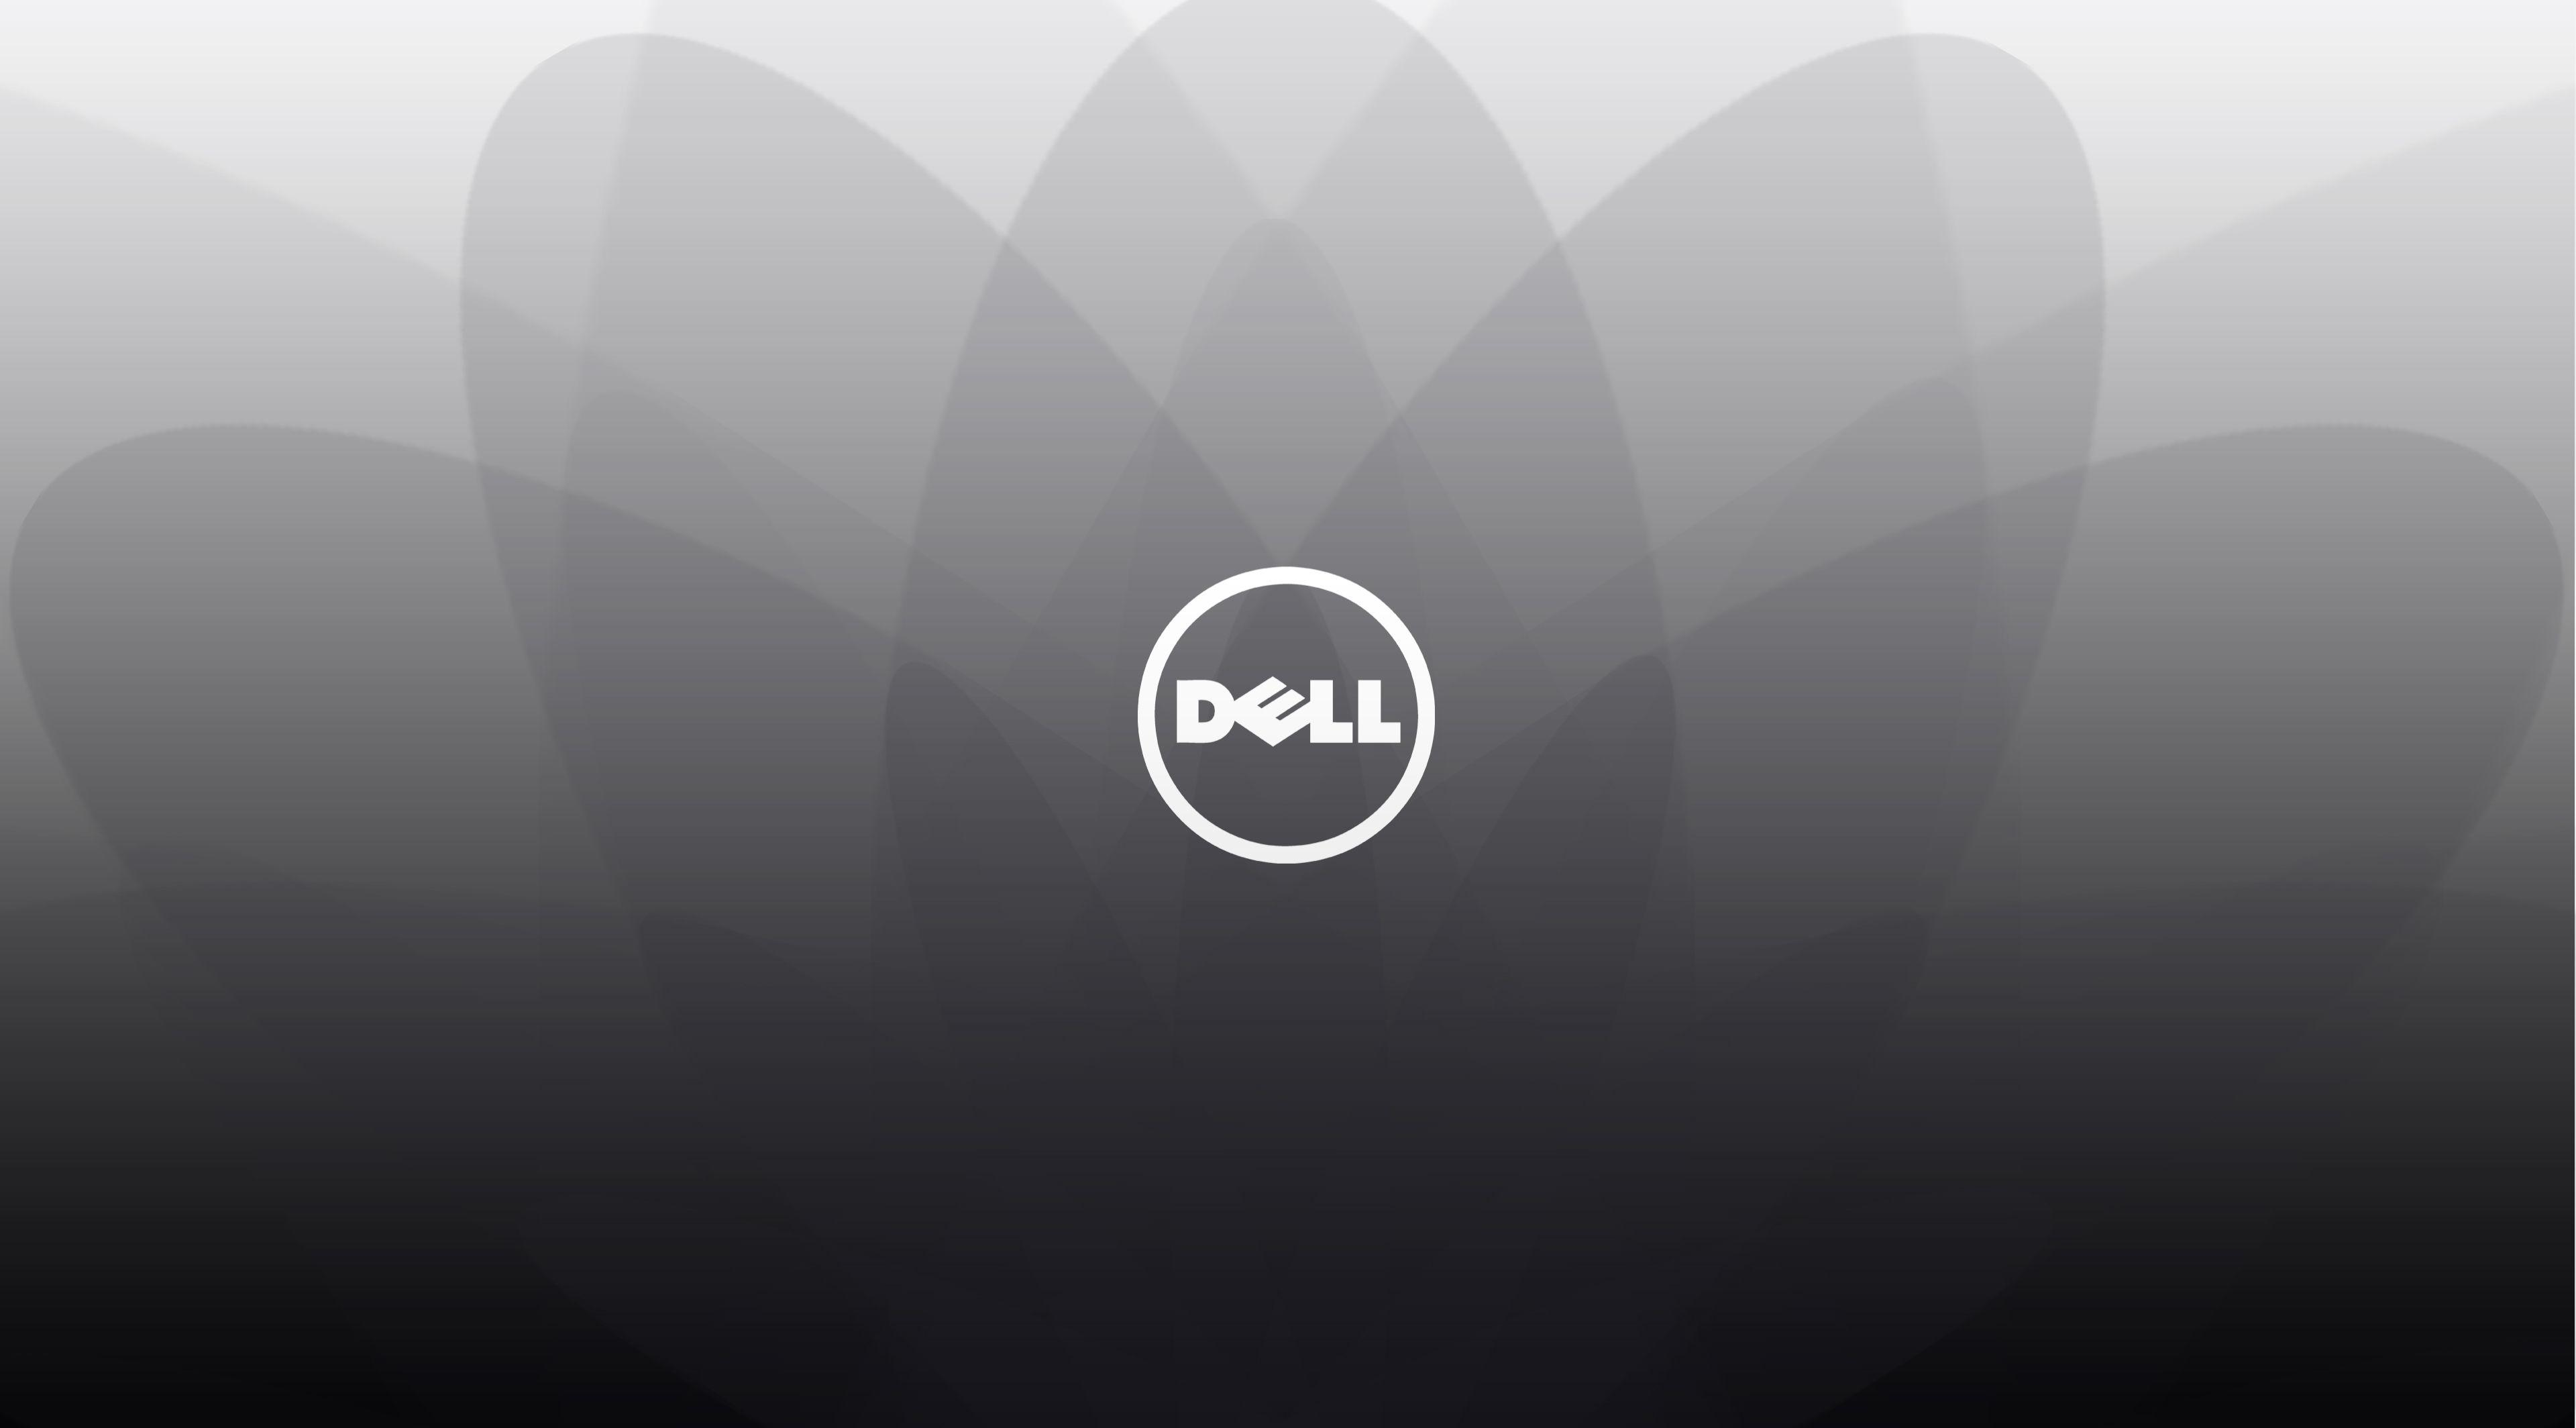 Wallpapers Dell - Wallpaper Cave